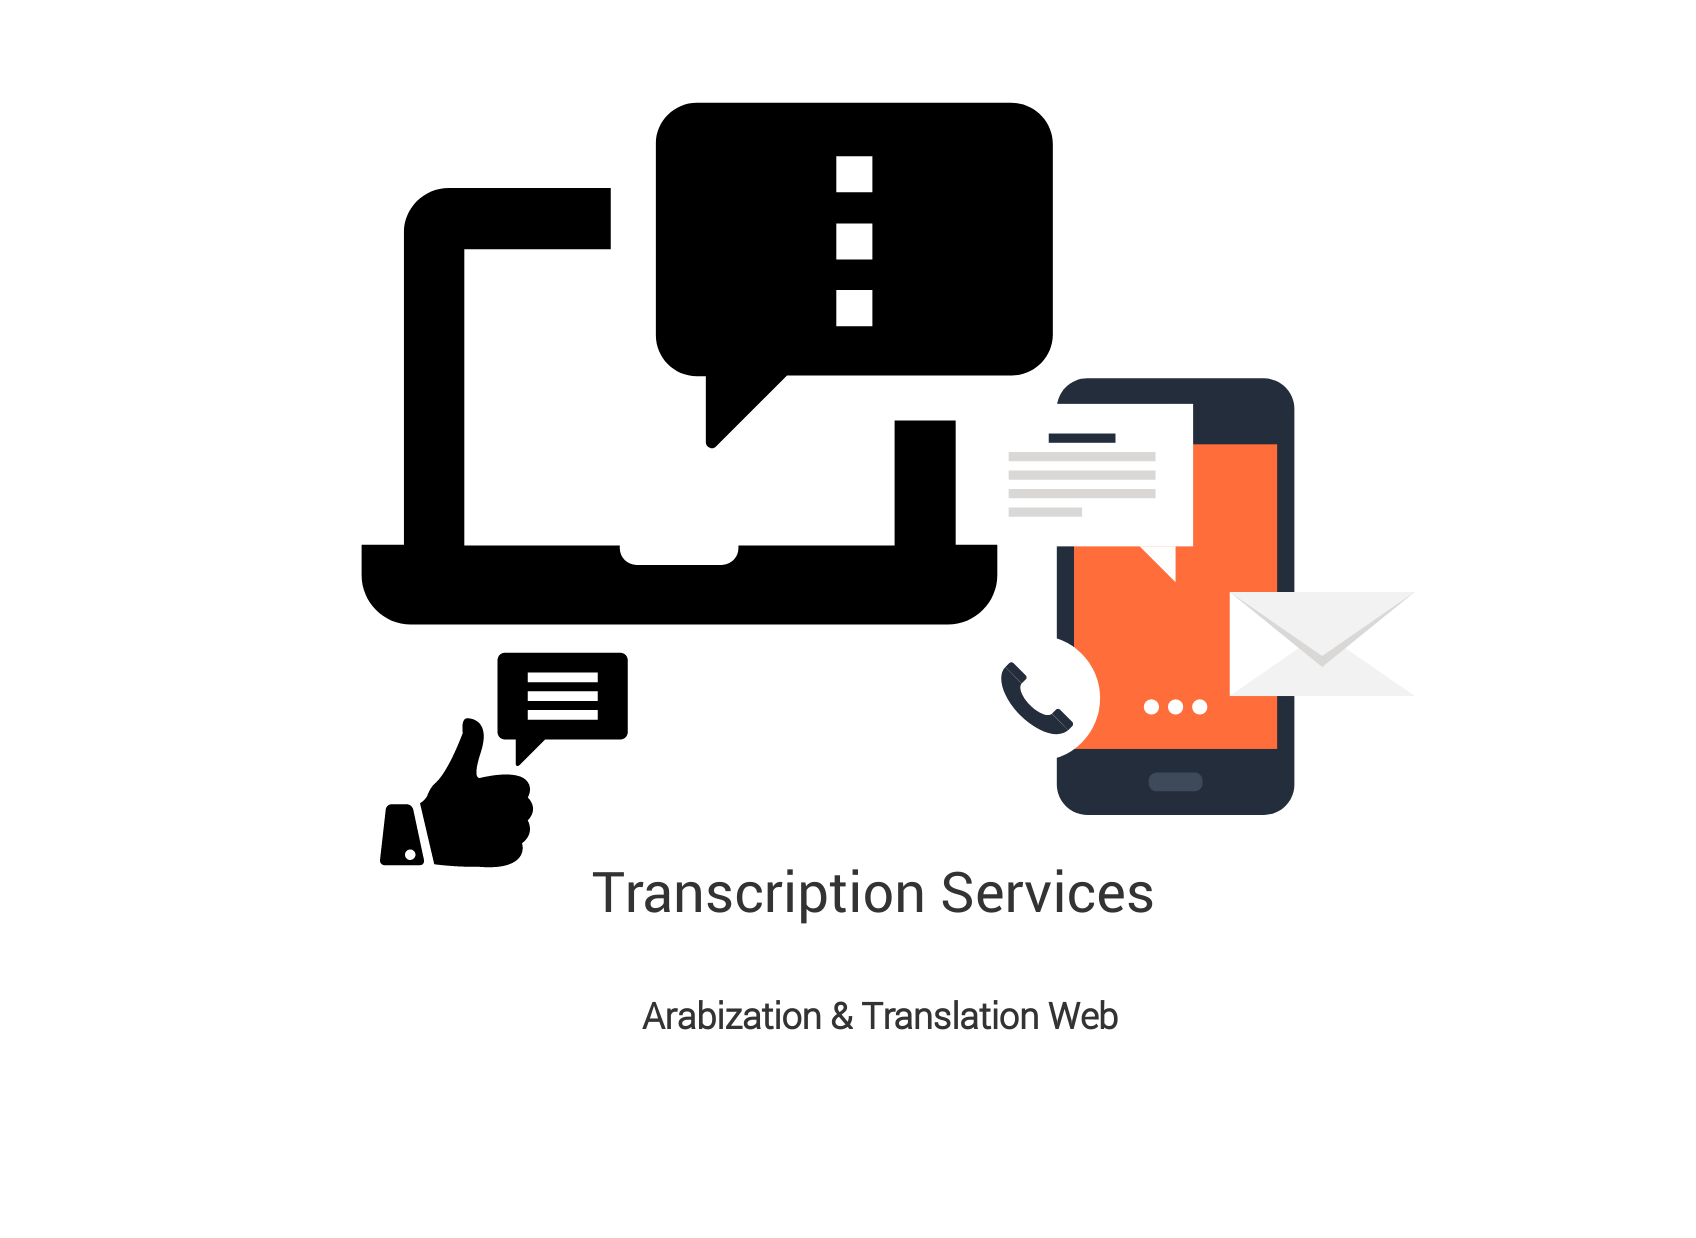 transcription-services